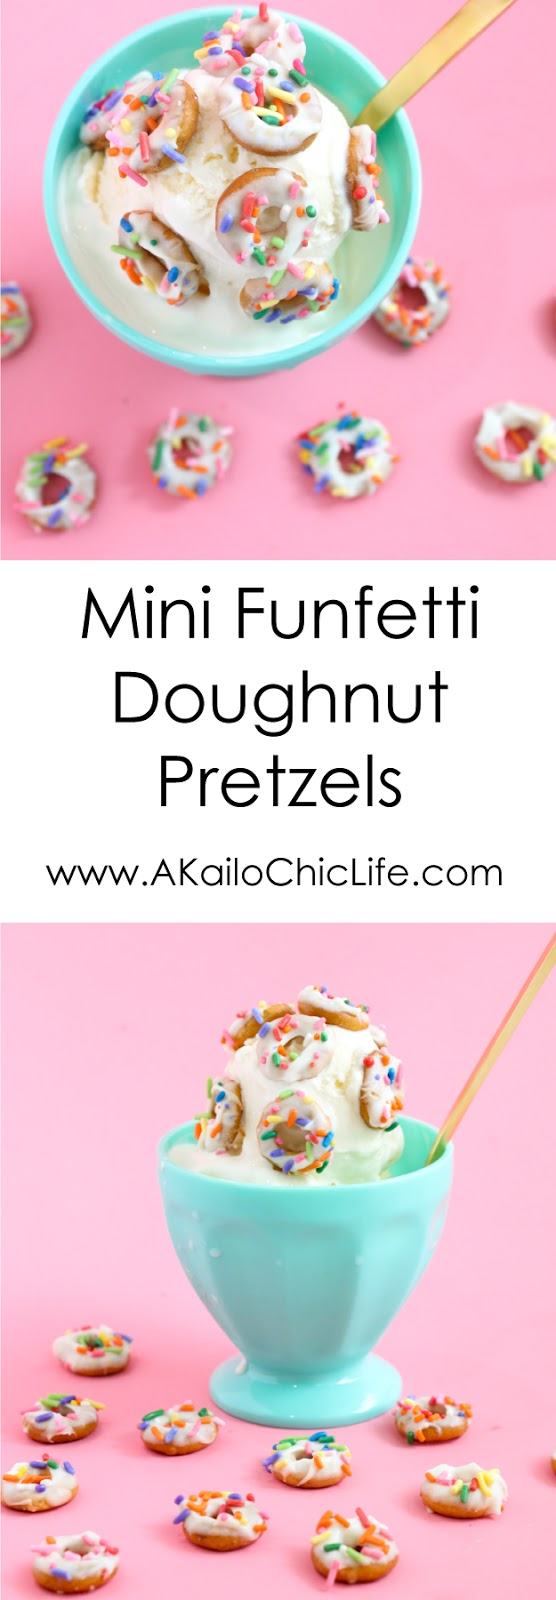 Mini Funfetti Doughnut Pretzels - White Chocolate dipped pretzels with sprinkles - look like mini doughnuts - perfect ice cream topper or donut sprinkles - recipe food dessert